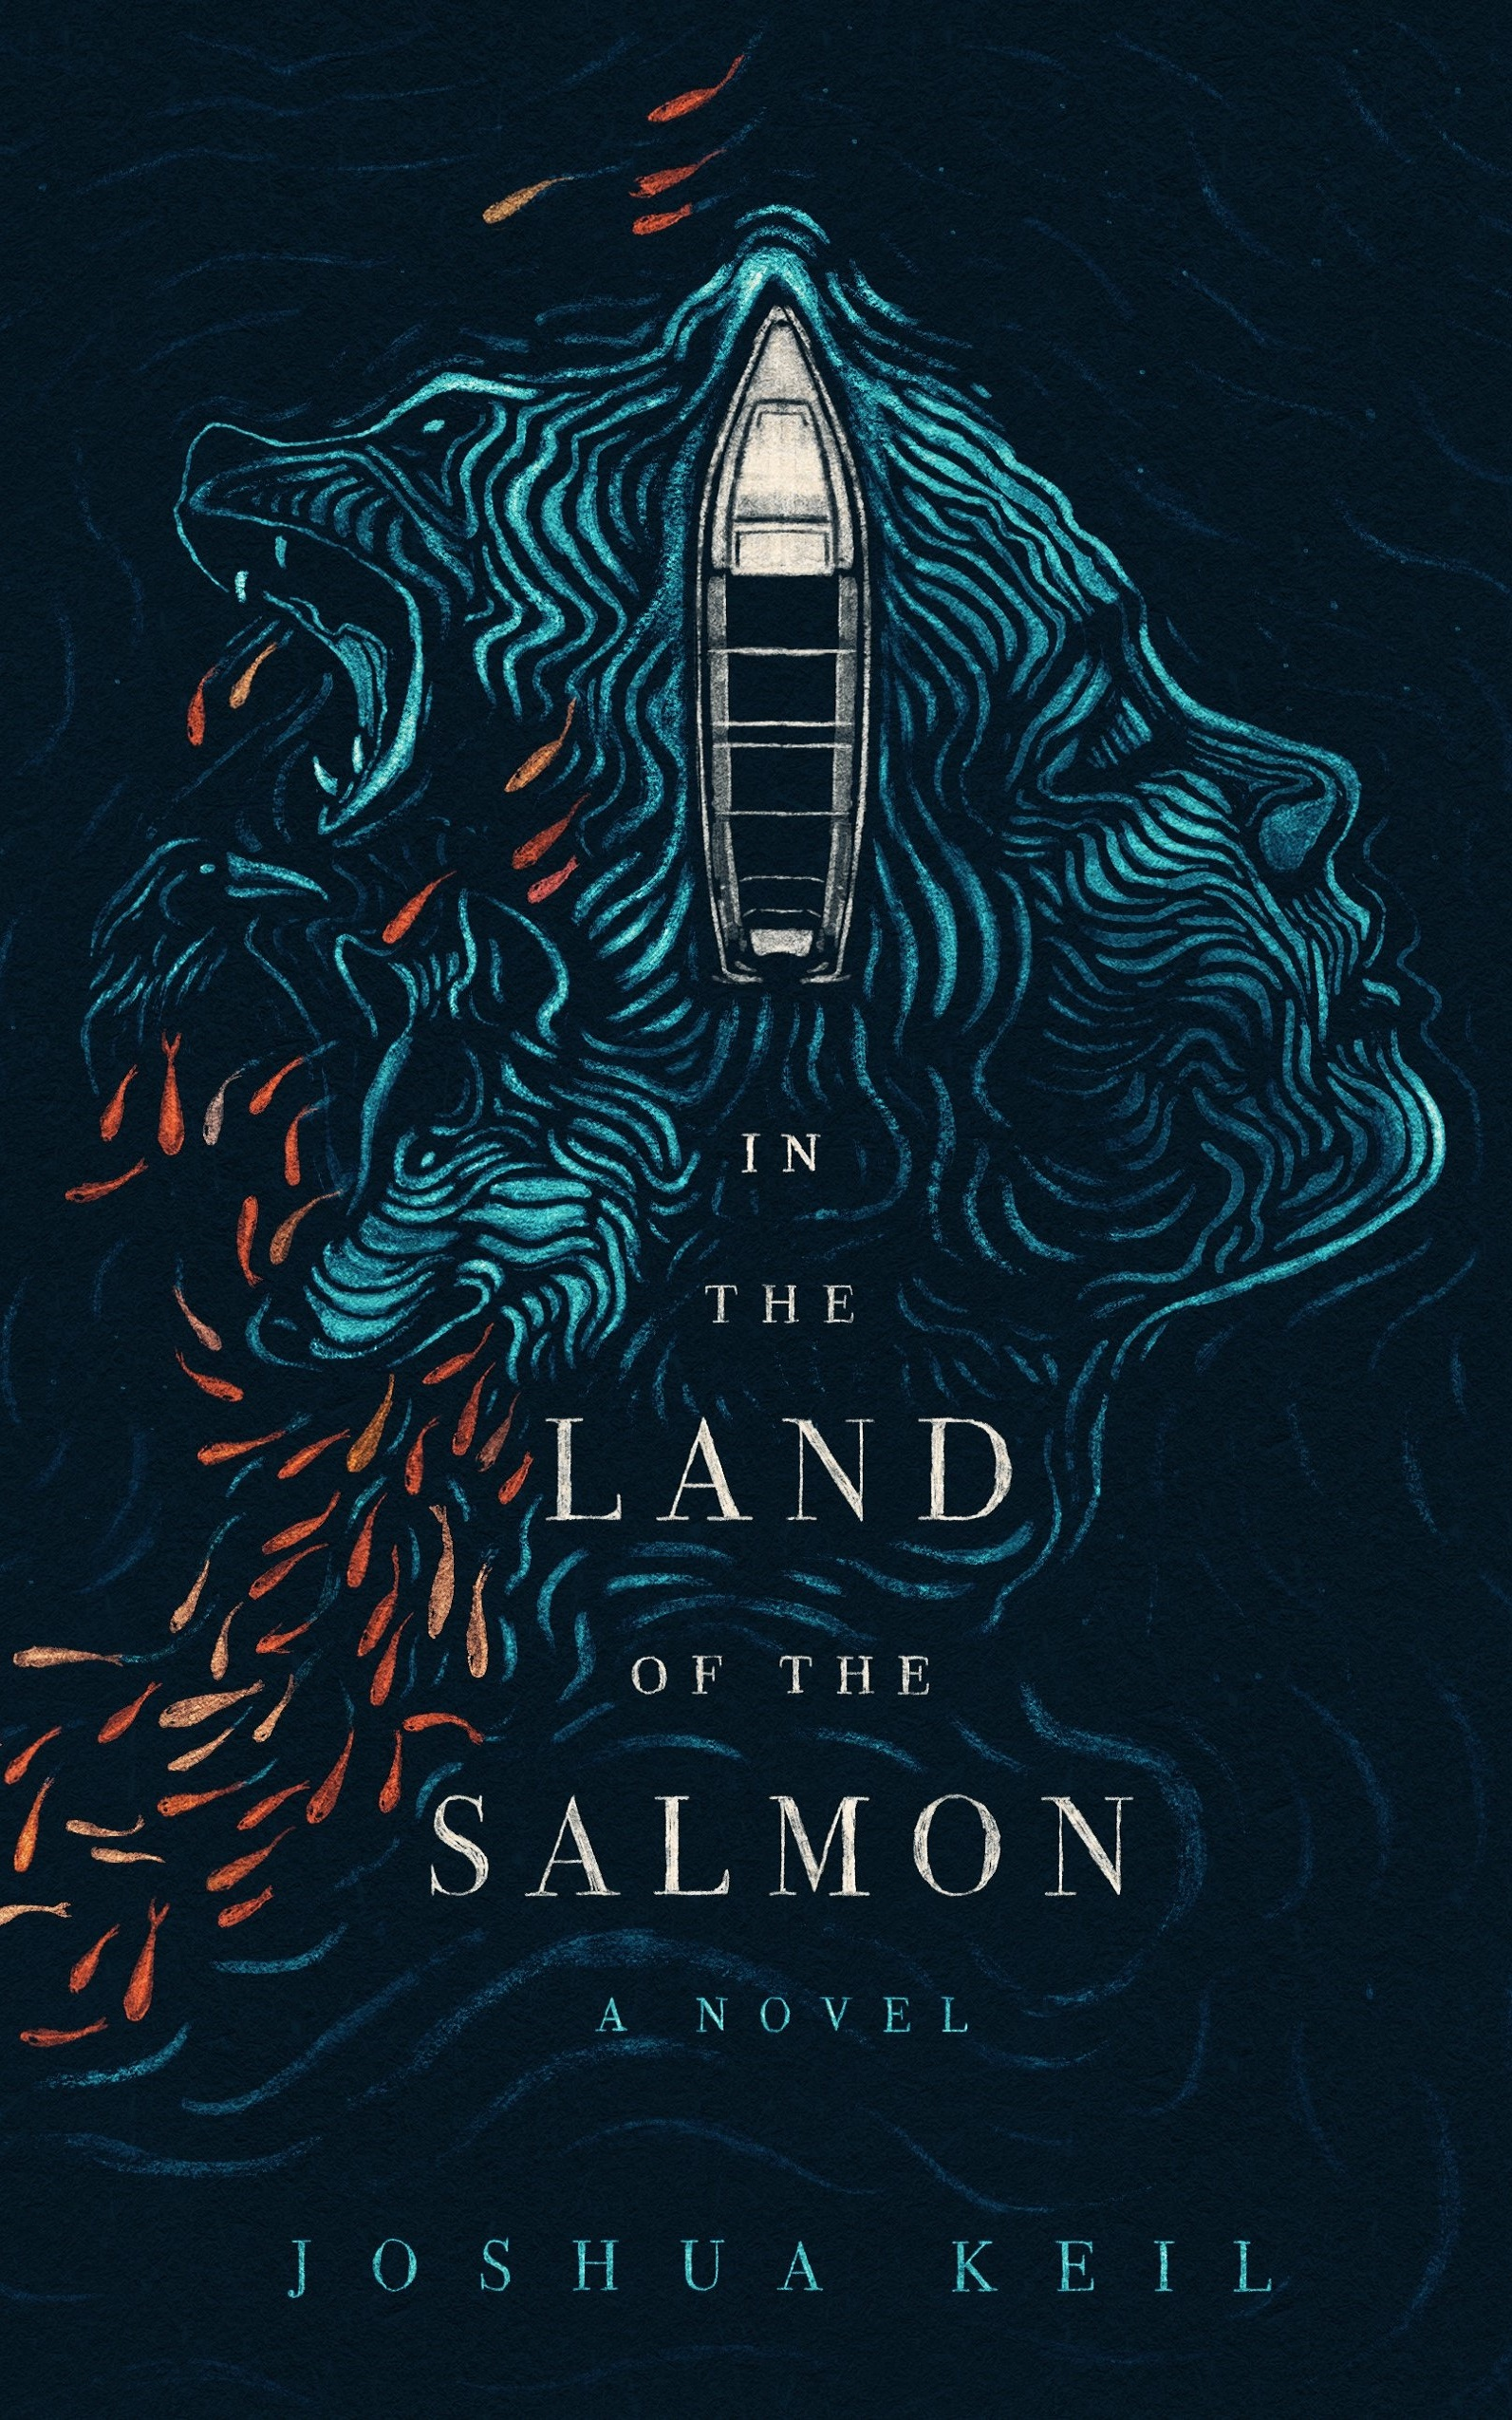 In The Land Of The Salmon